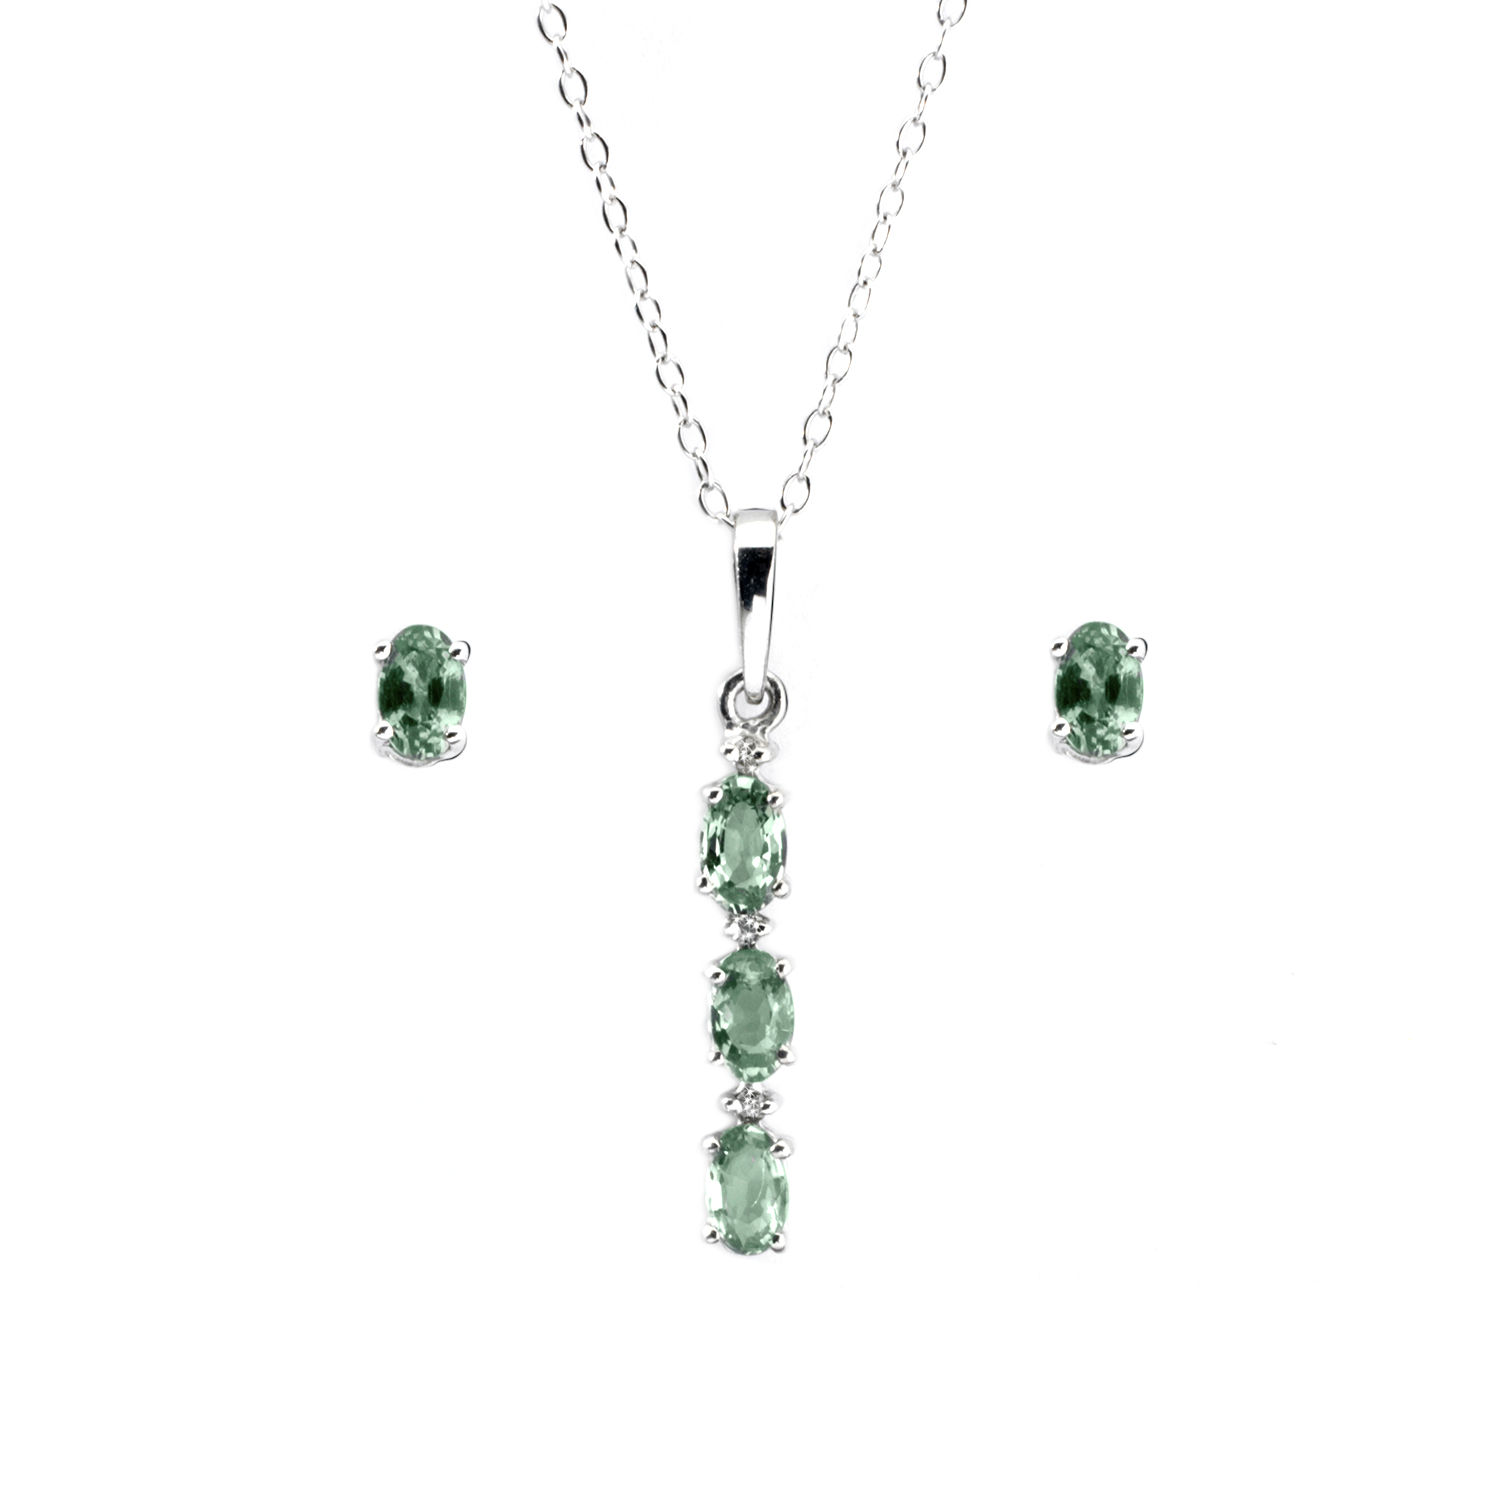 Anderson webb green sapphire and diamond pendant and earrings set image is loading anderson amp webb green sapphire and diamond pendant aloadofball Choice Image